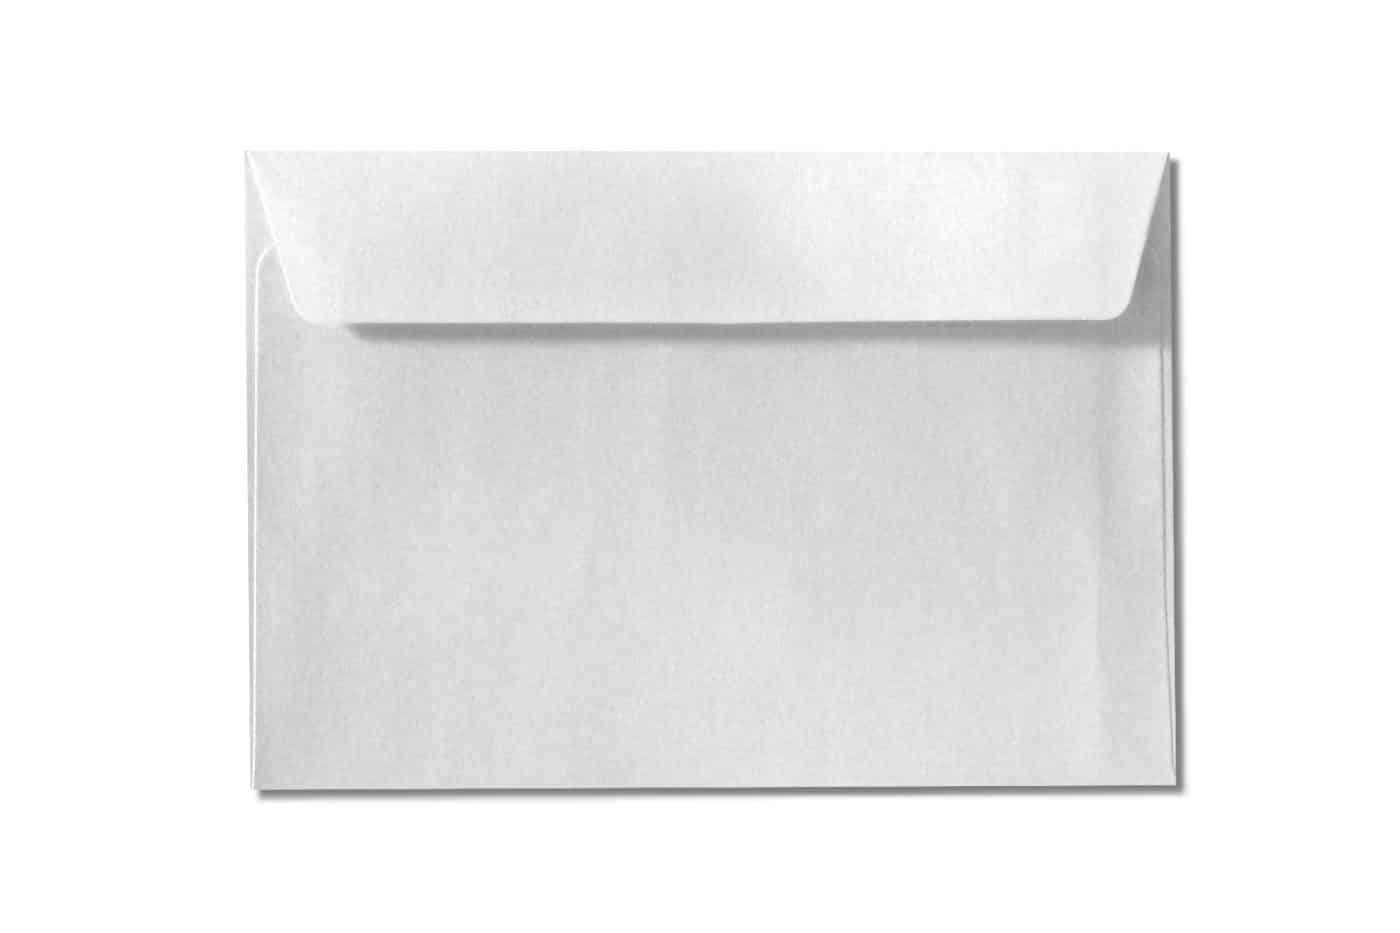 c6 c5 metallic white envelopes